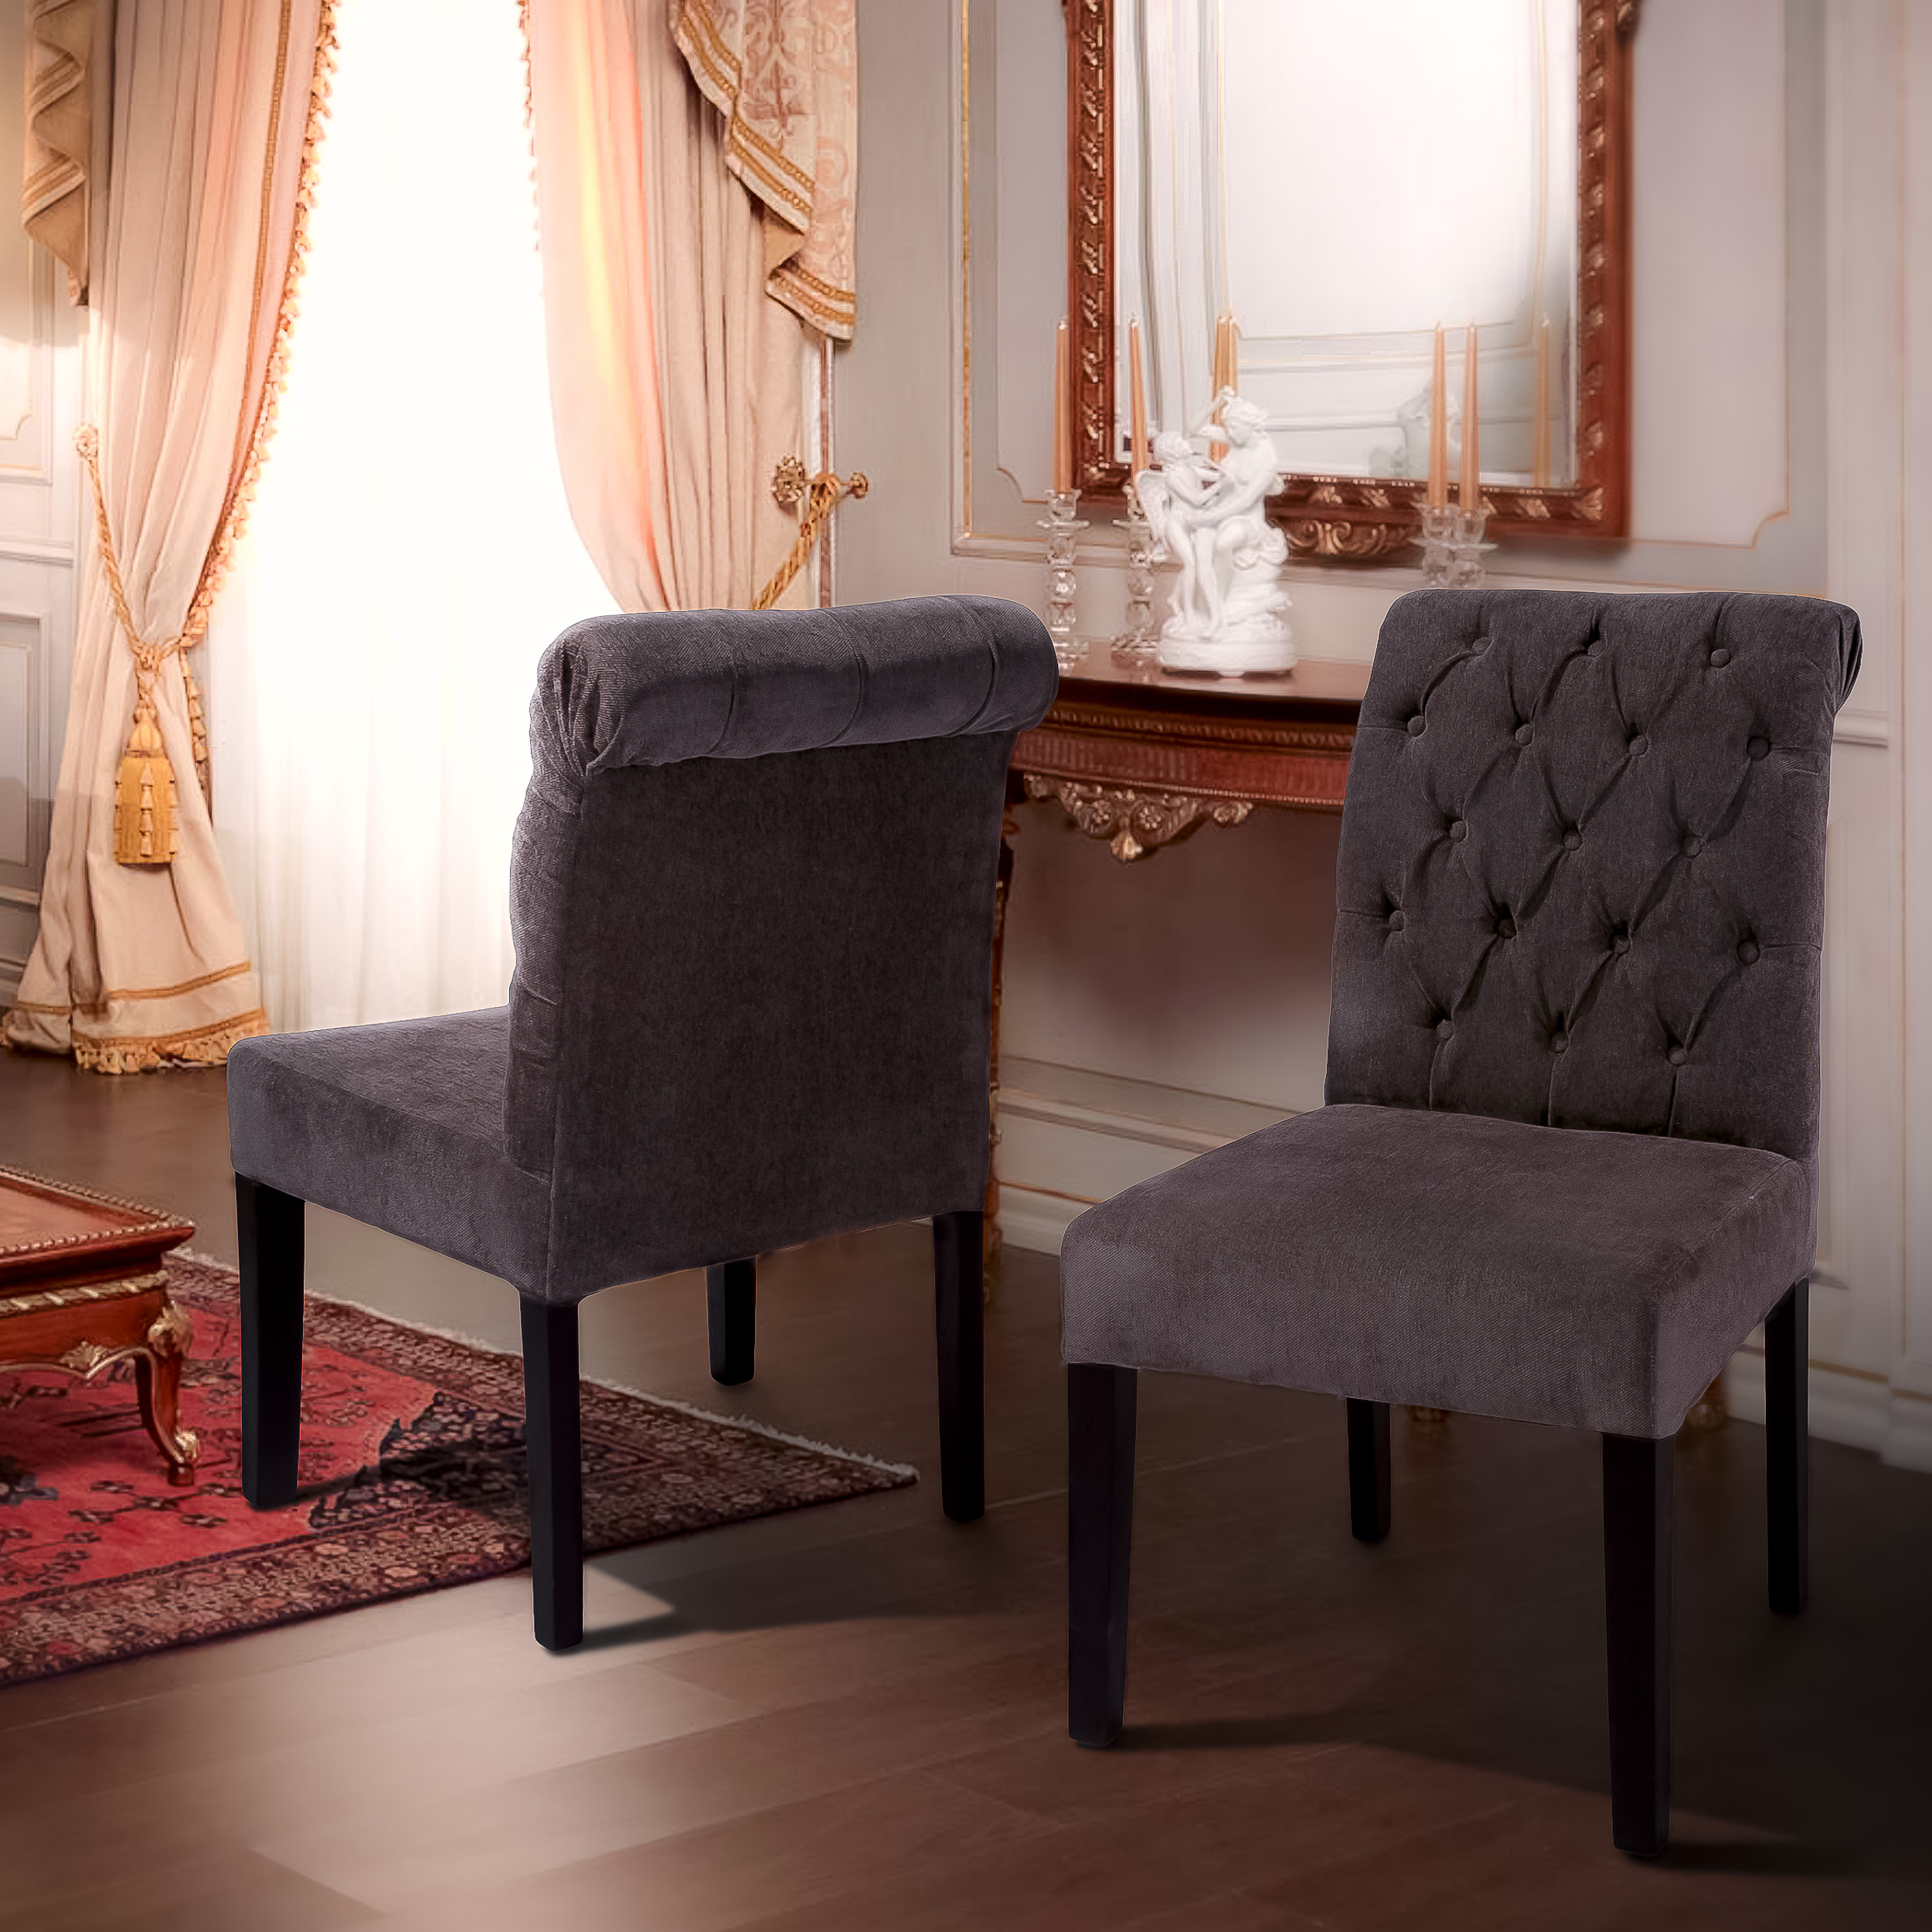 Home Chair: Dining Room: Enchanting Tufted Dining Chair For Home